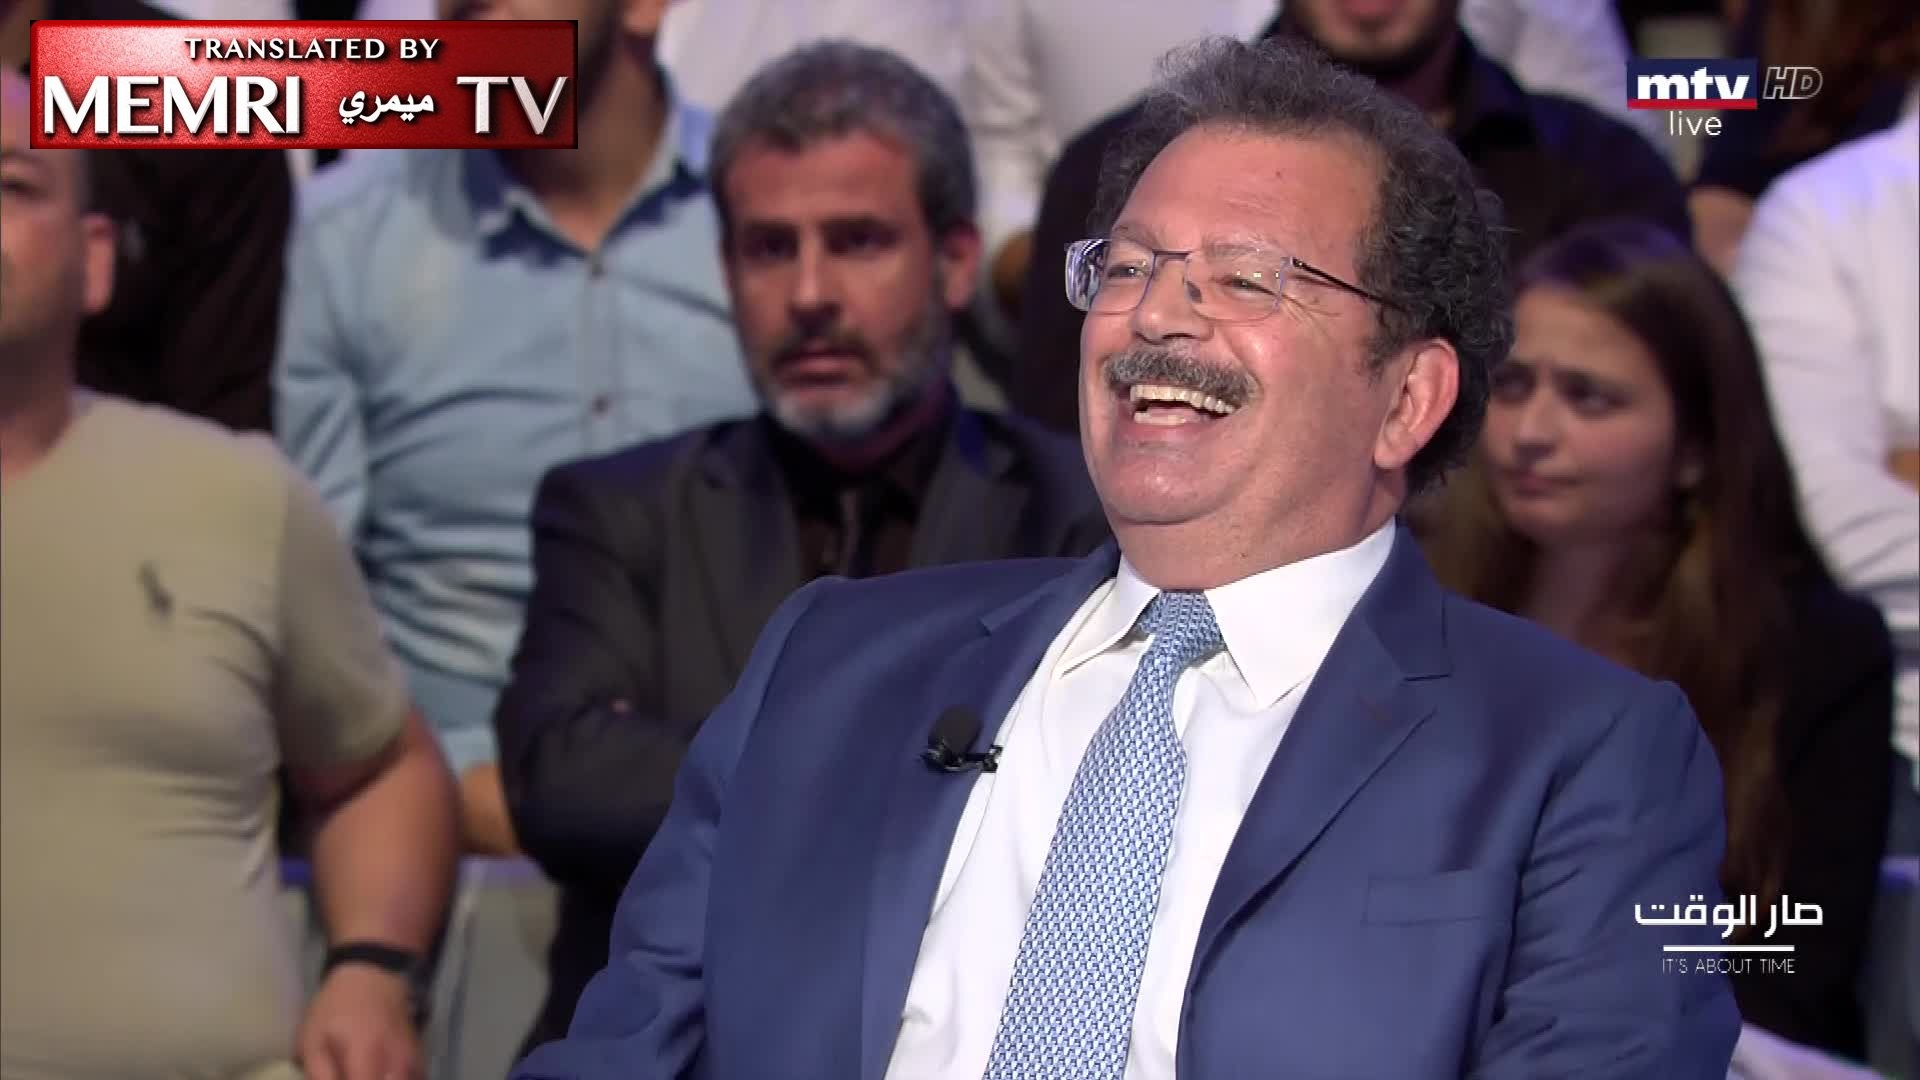 Lebanese Constitutional Expert Chibli Mallat: We Should Place Our Heads of State on Trial; Next PM Can Be a Woman